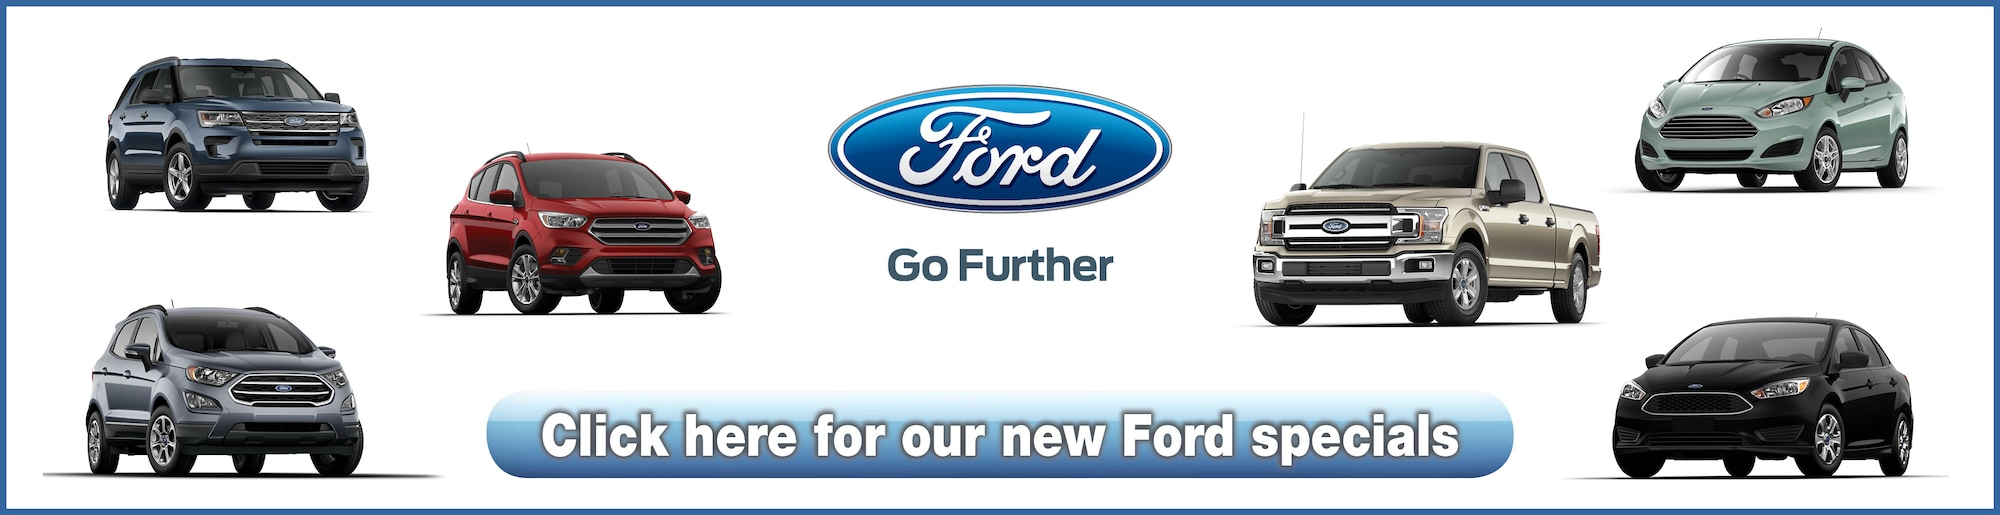 Gmc Paso Robles >> Paso Robles Ford | Ford Dealership in Paso Robles CA